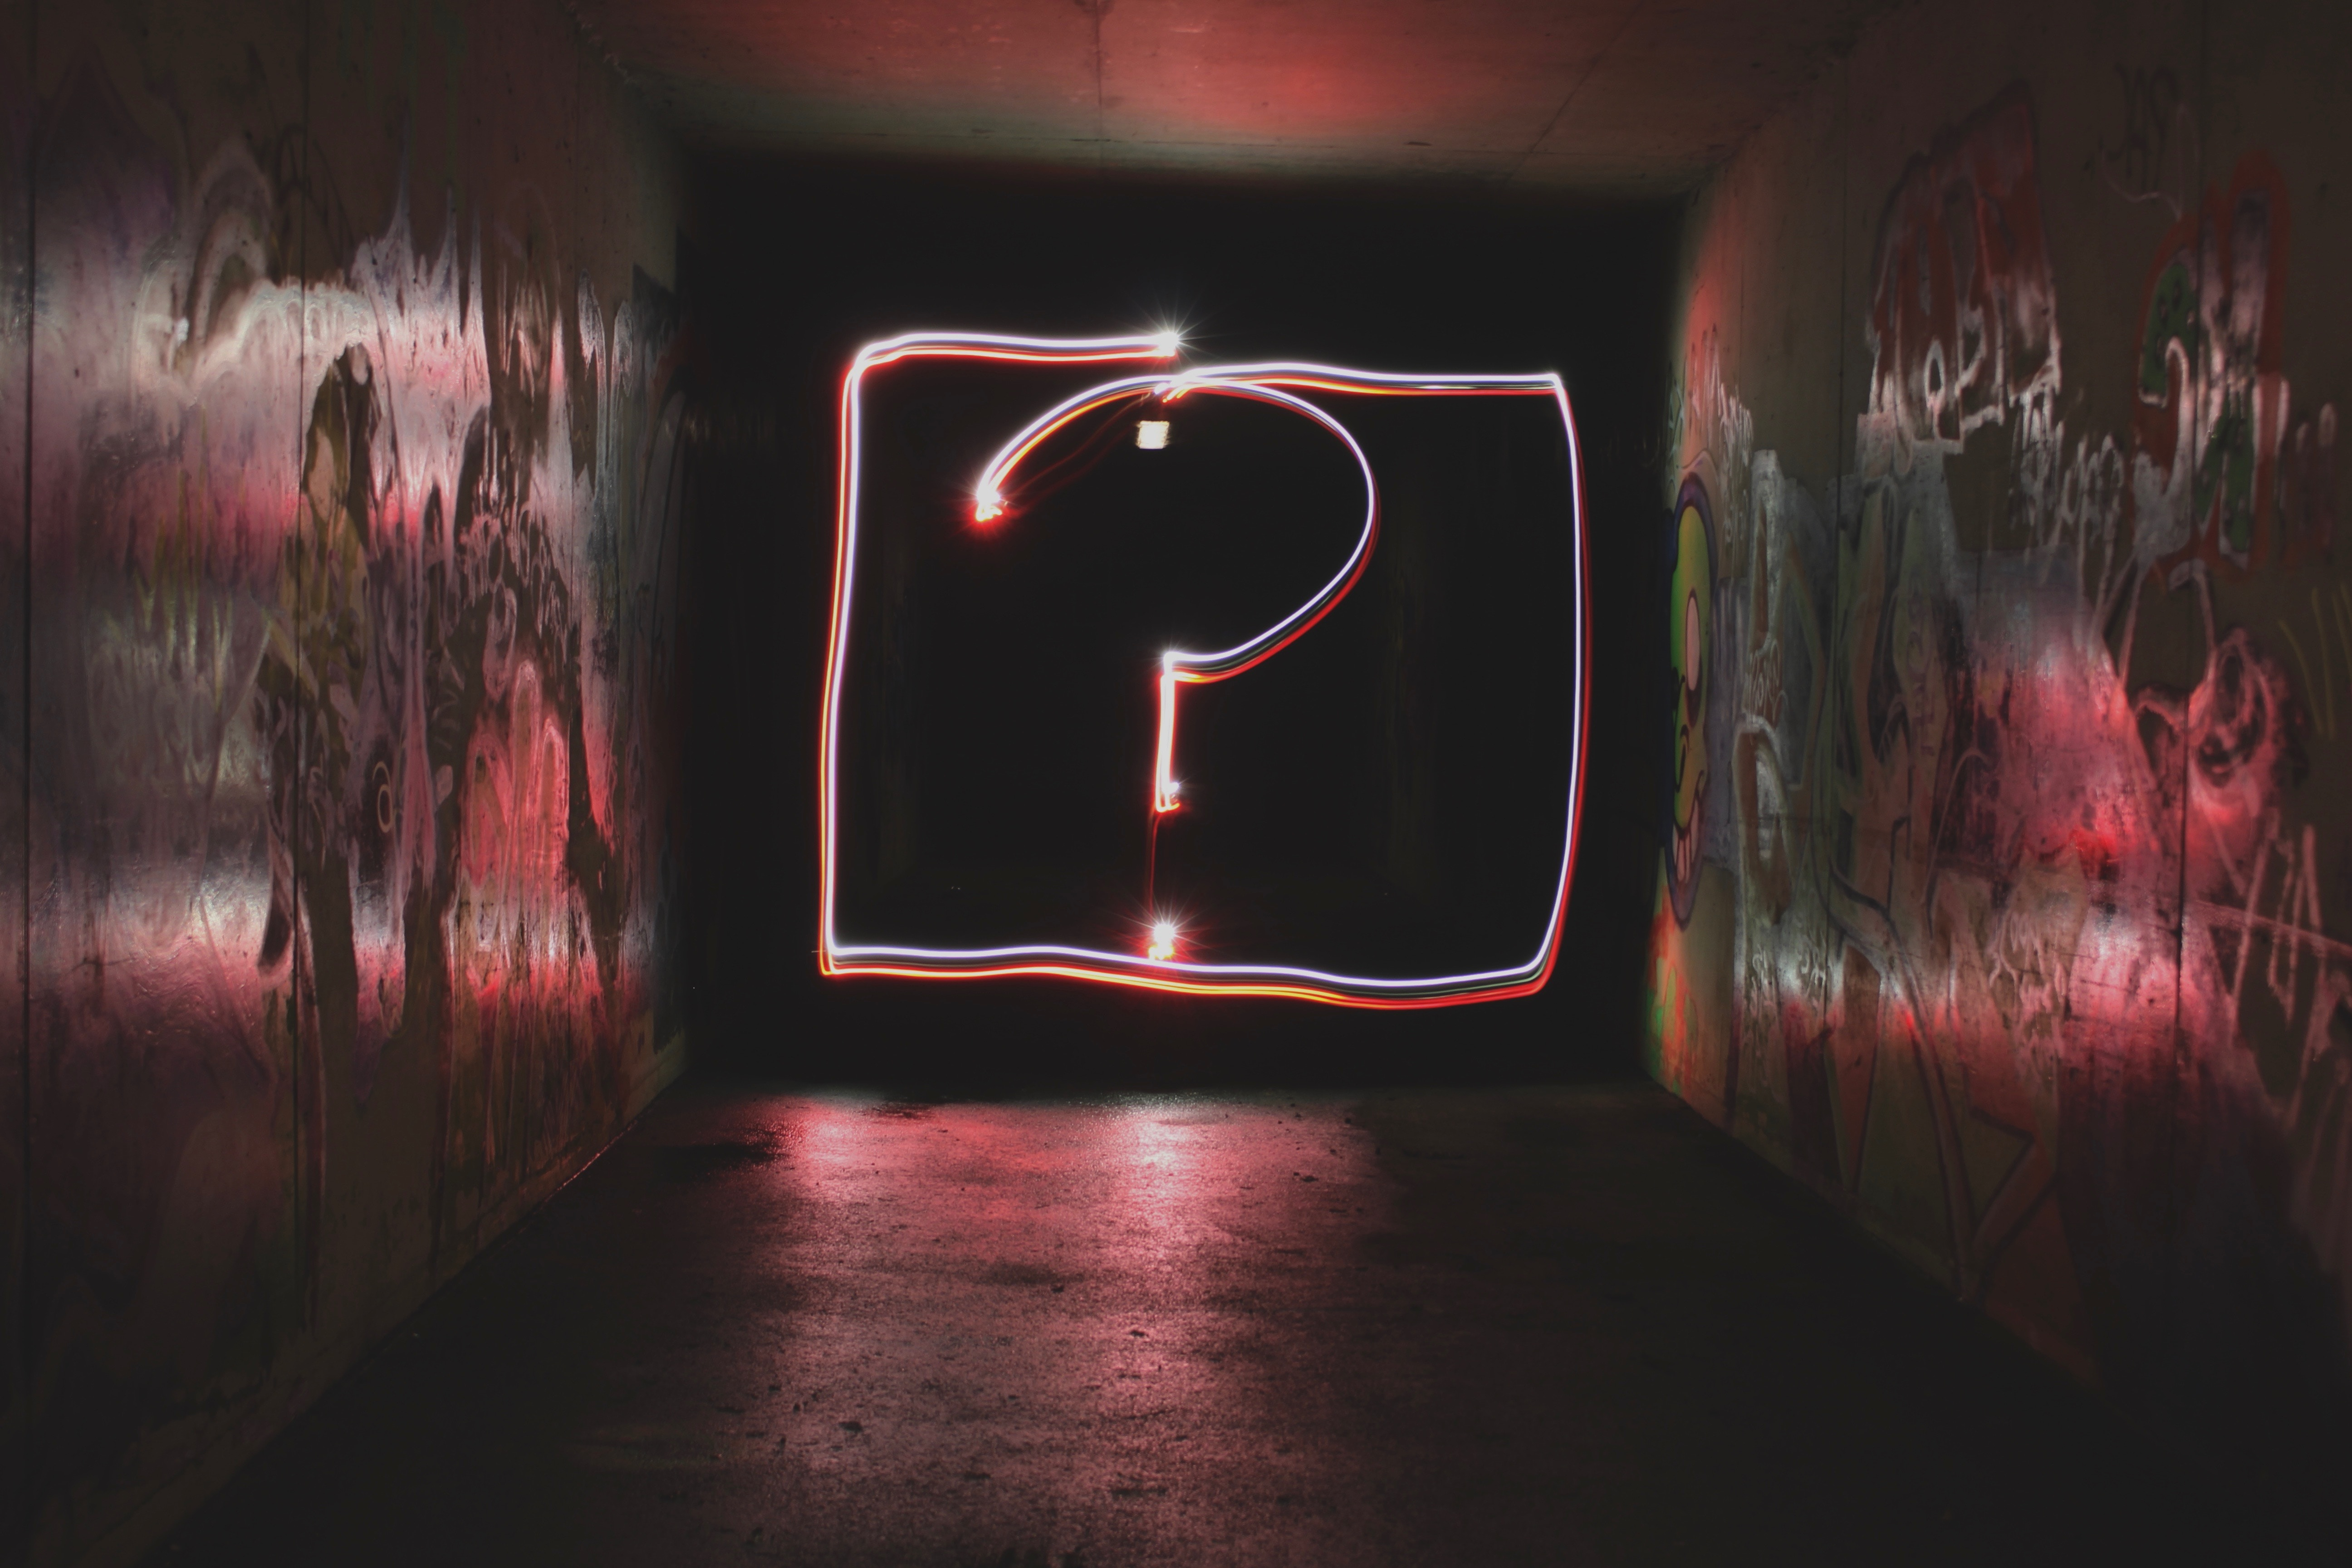 Large bright question mark at the end of a dark hallway